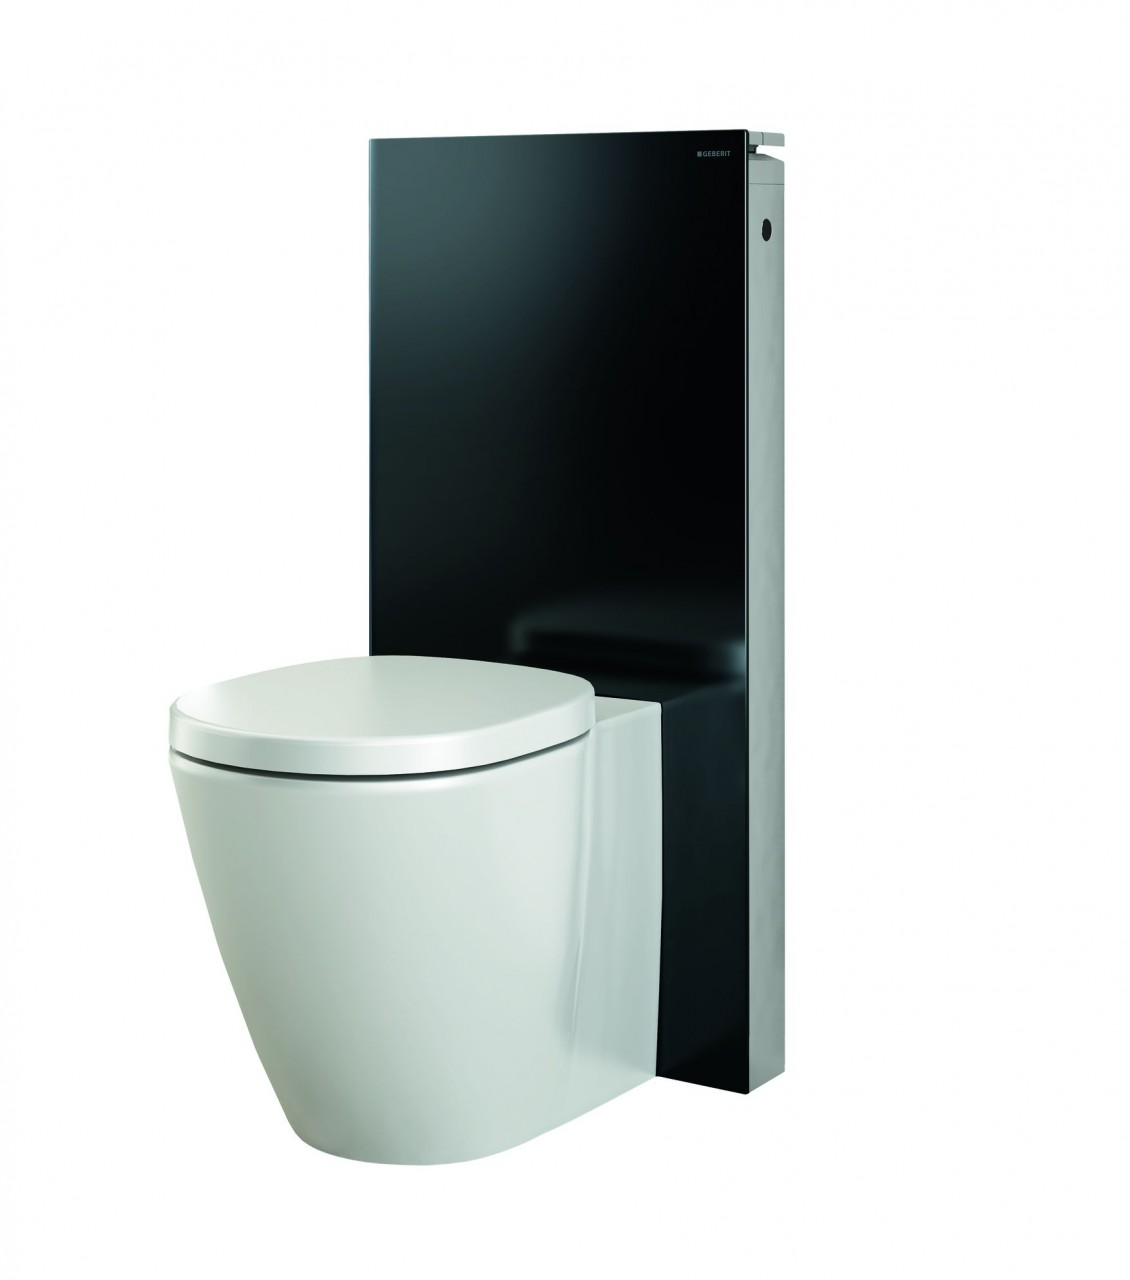 geberit monolith 101 for floor mounted wc black glass ap bath rooms. Black Bedroom Furniture Sets. Home Design Ideas